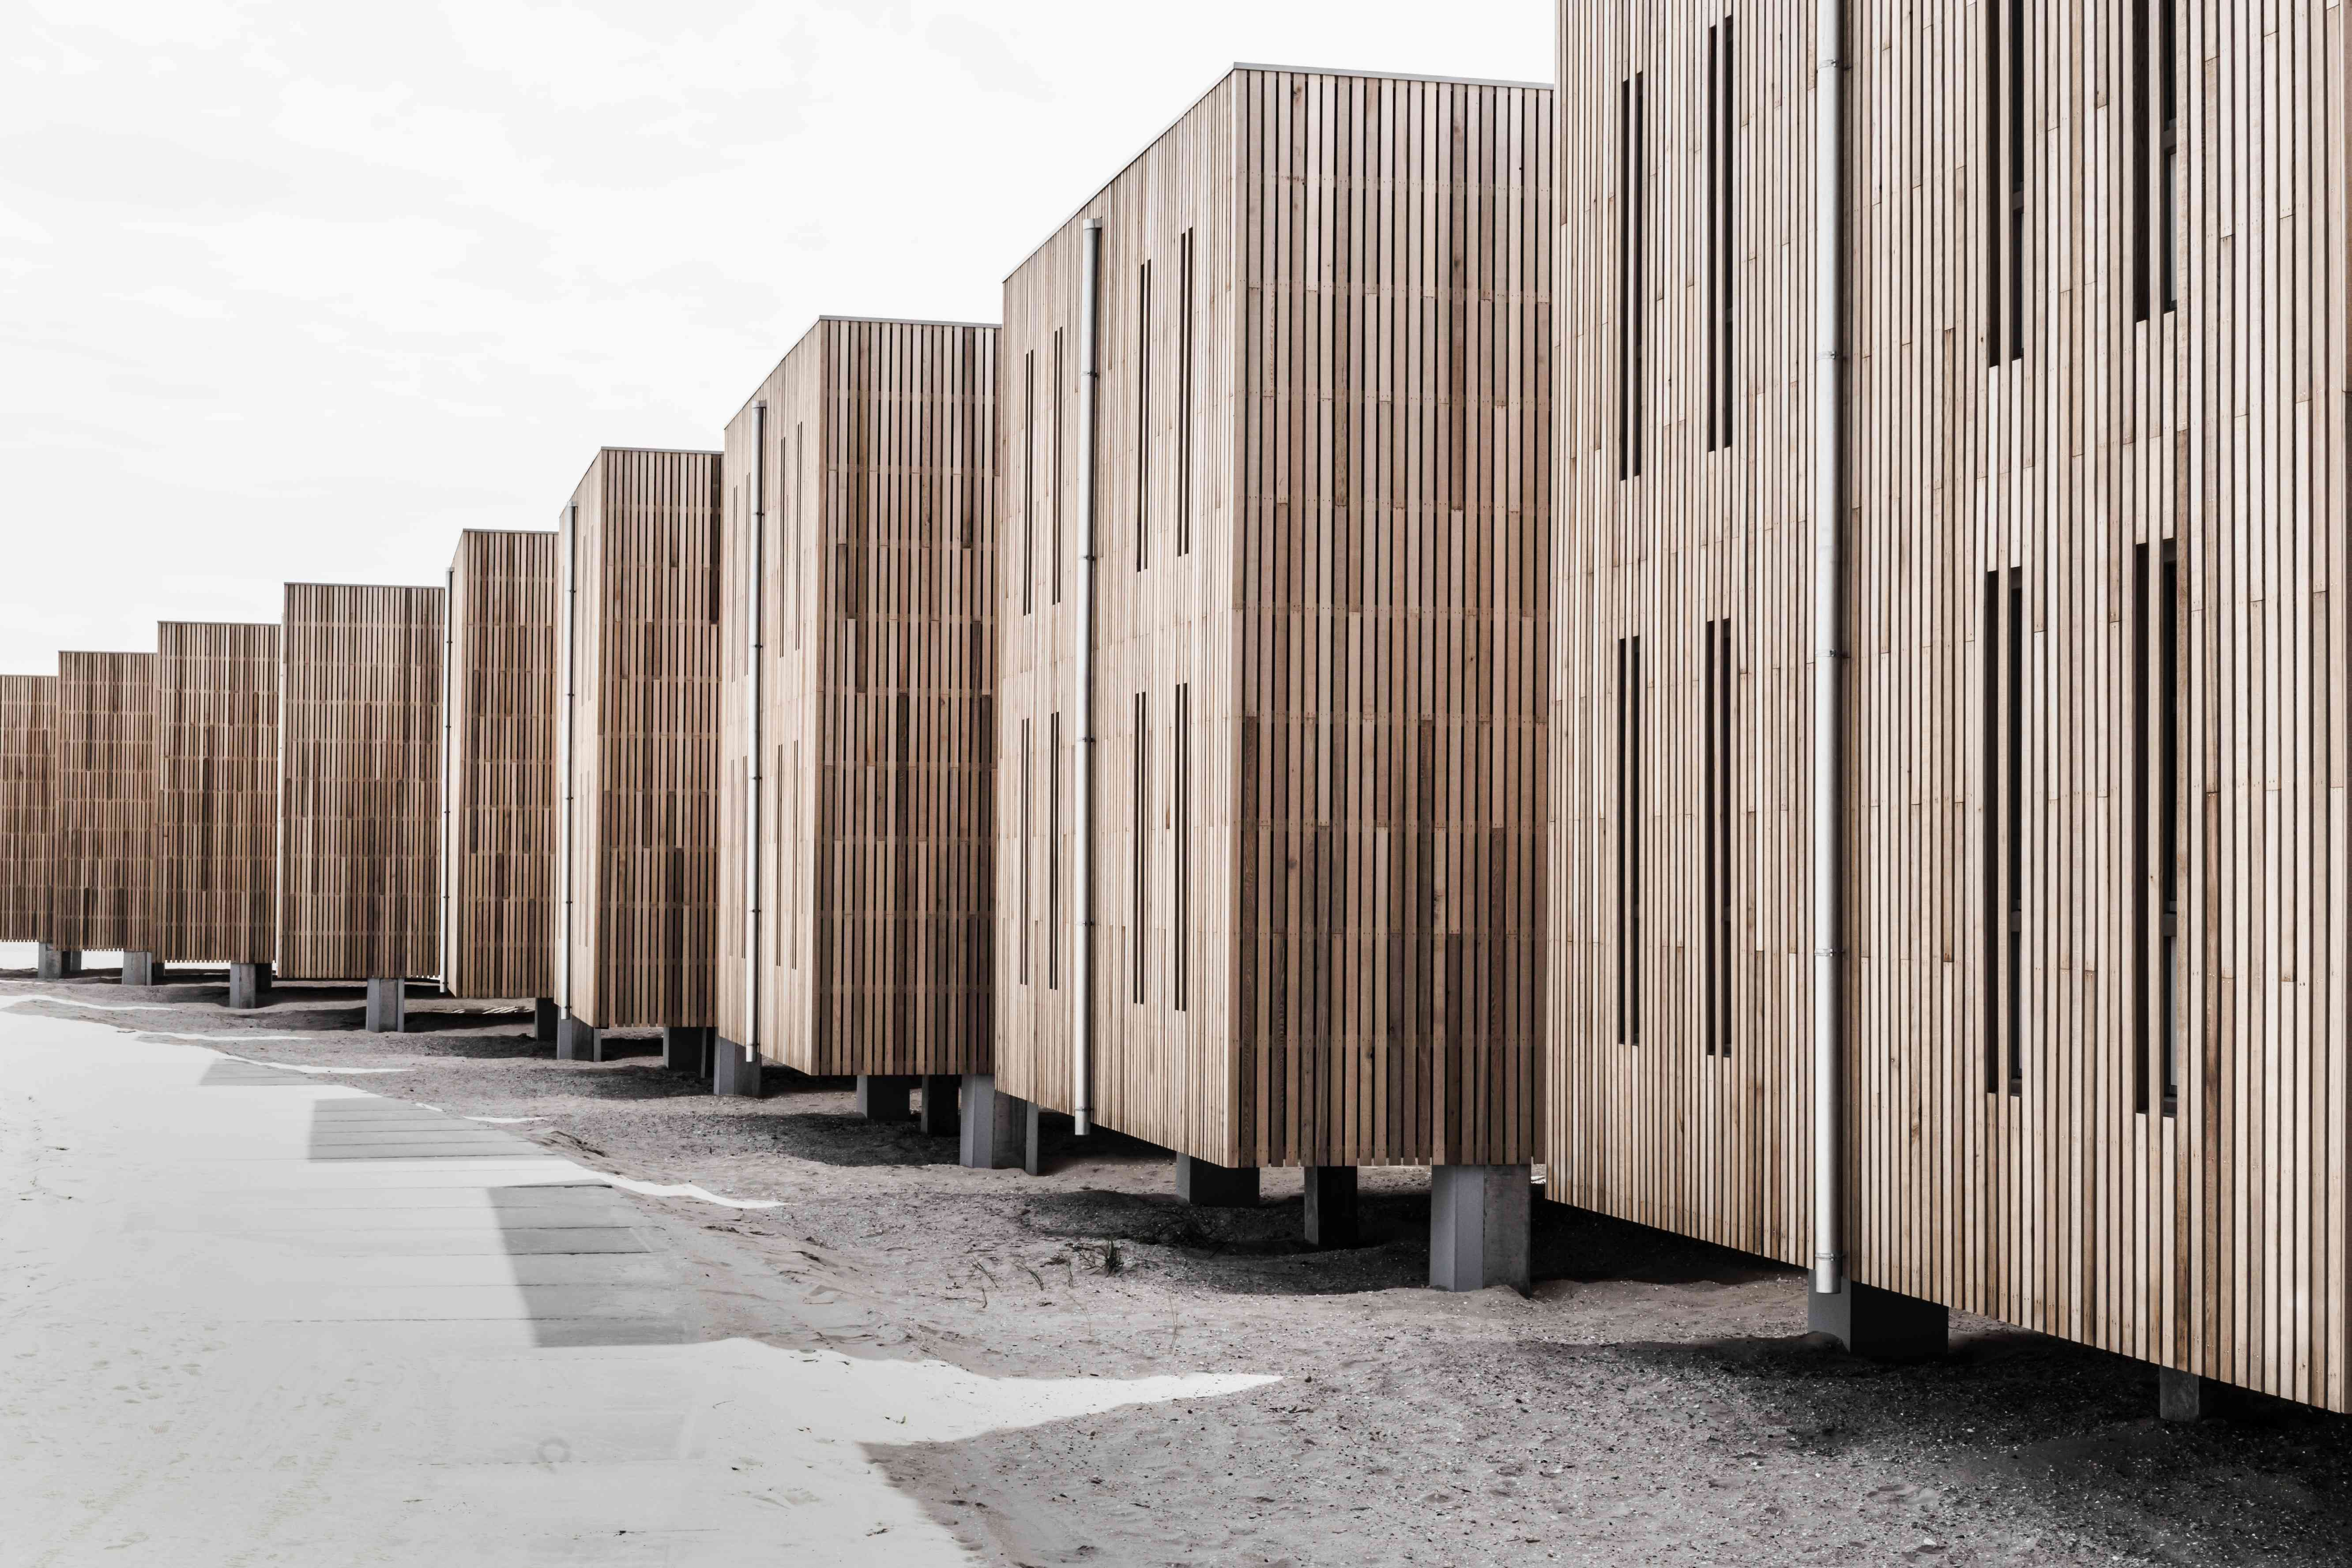 A rows of wooden buildings on the beach.